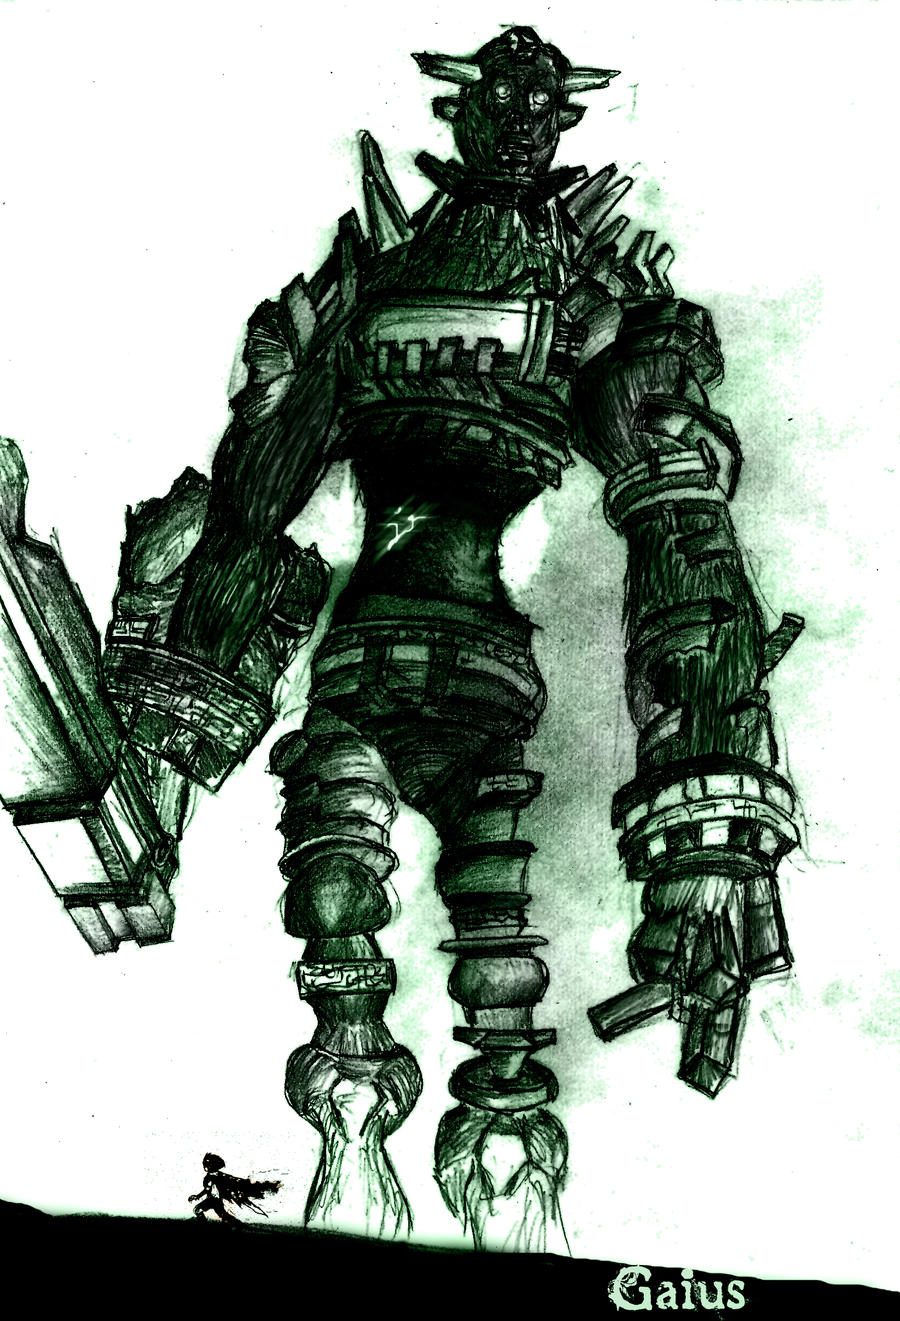 Gaius shadow of the colossus by torvoraptor on deviantart